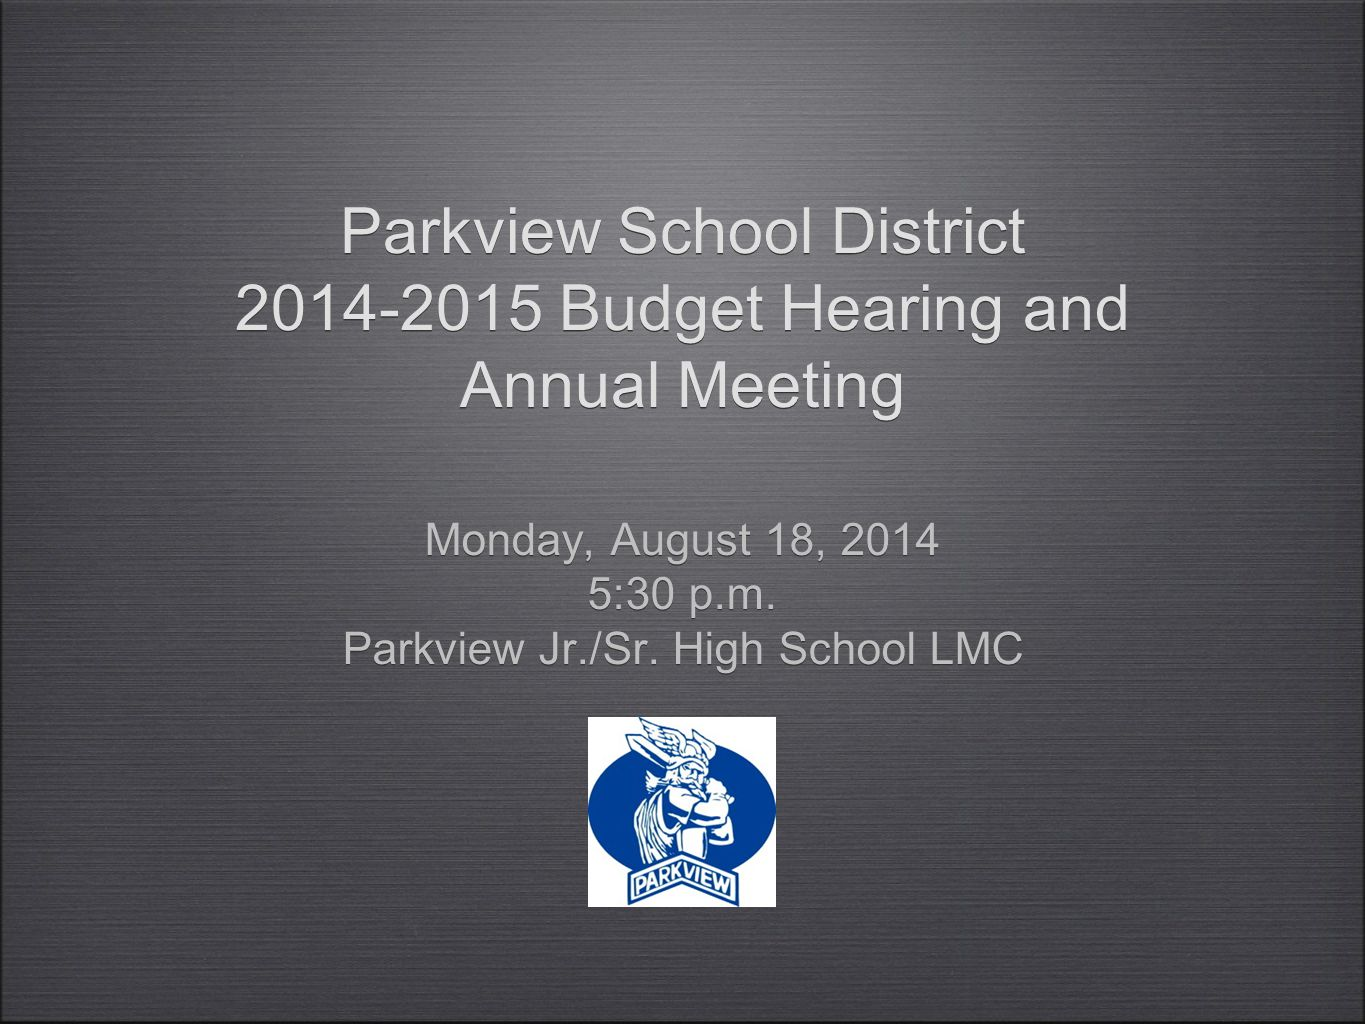 Parkview School District 2013-2014 Budget Overview The Parkview School District is expected to have a shortfall of $277,819.99 in the General Fund for the 2013-2014 fiscal year.